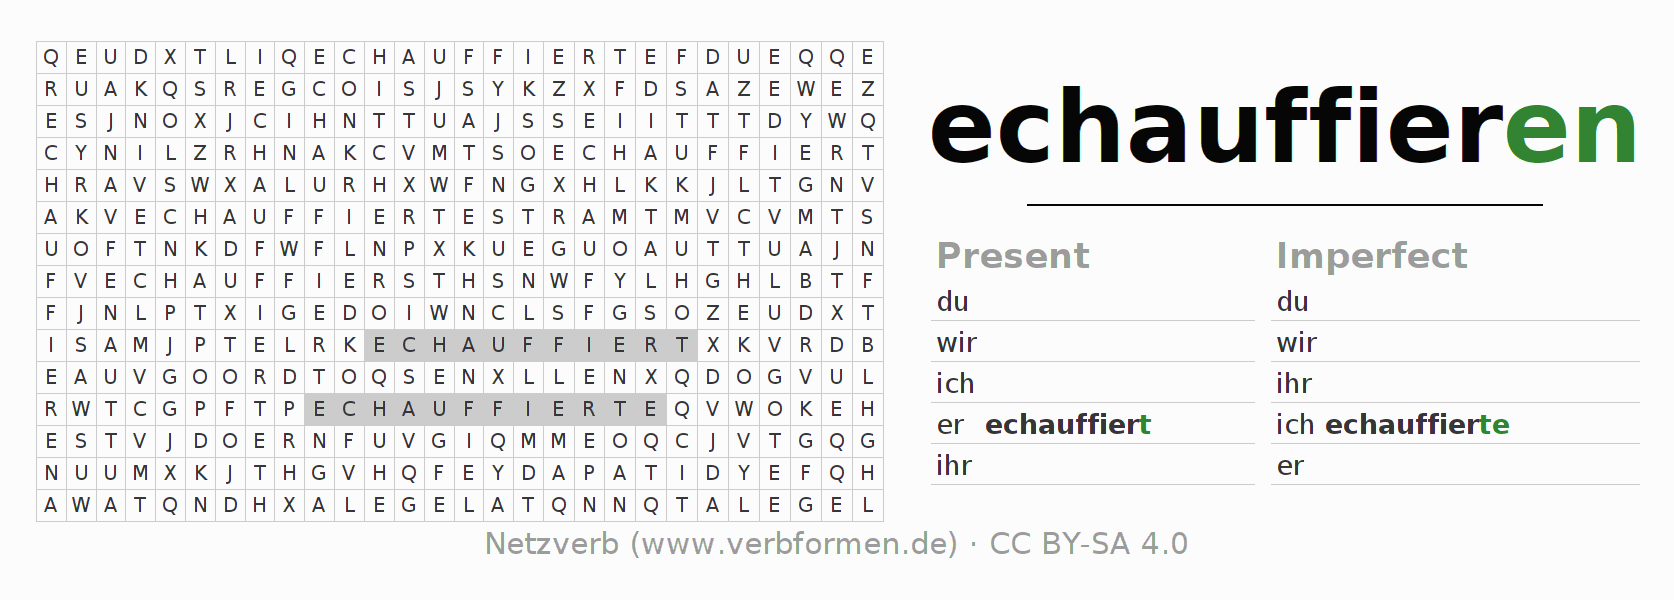 Word search puzzle for the conjugation of the verb echauffieren